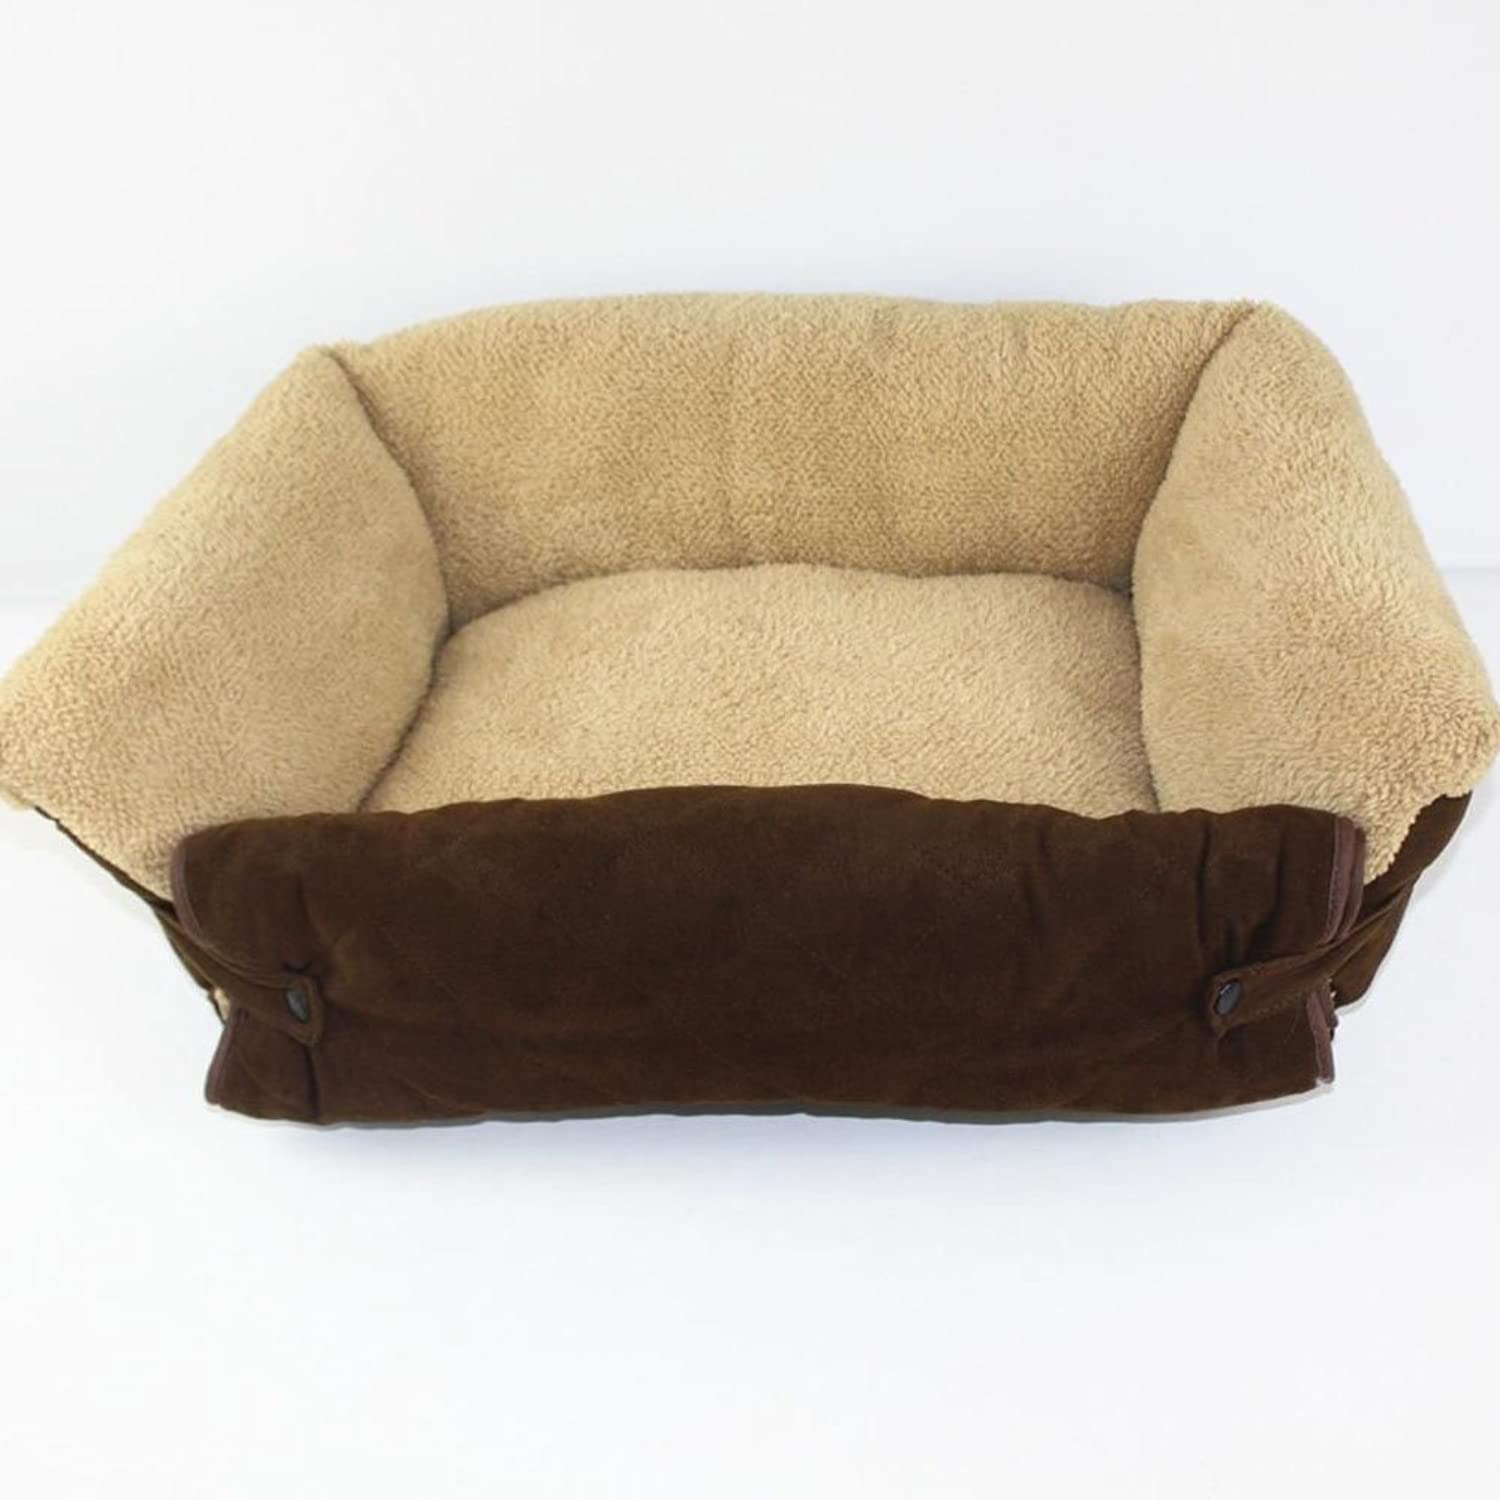 Dog Cat Bed Soft Warm Pet Beds Cushion Puppy Sofa Couch Removable and washable Mat Kennel Pad Furniture